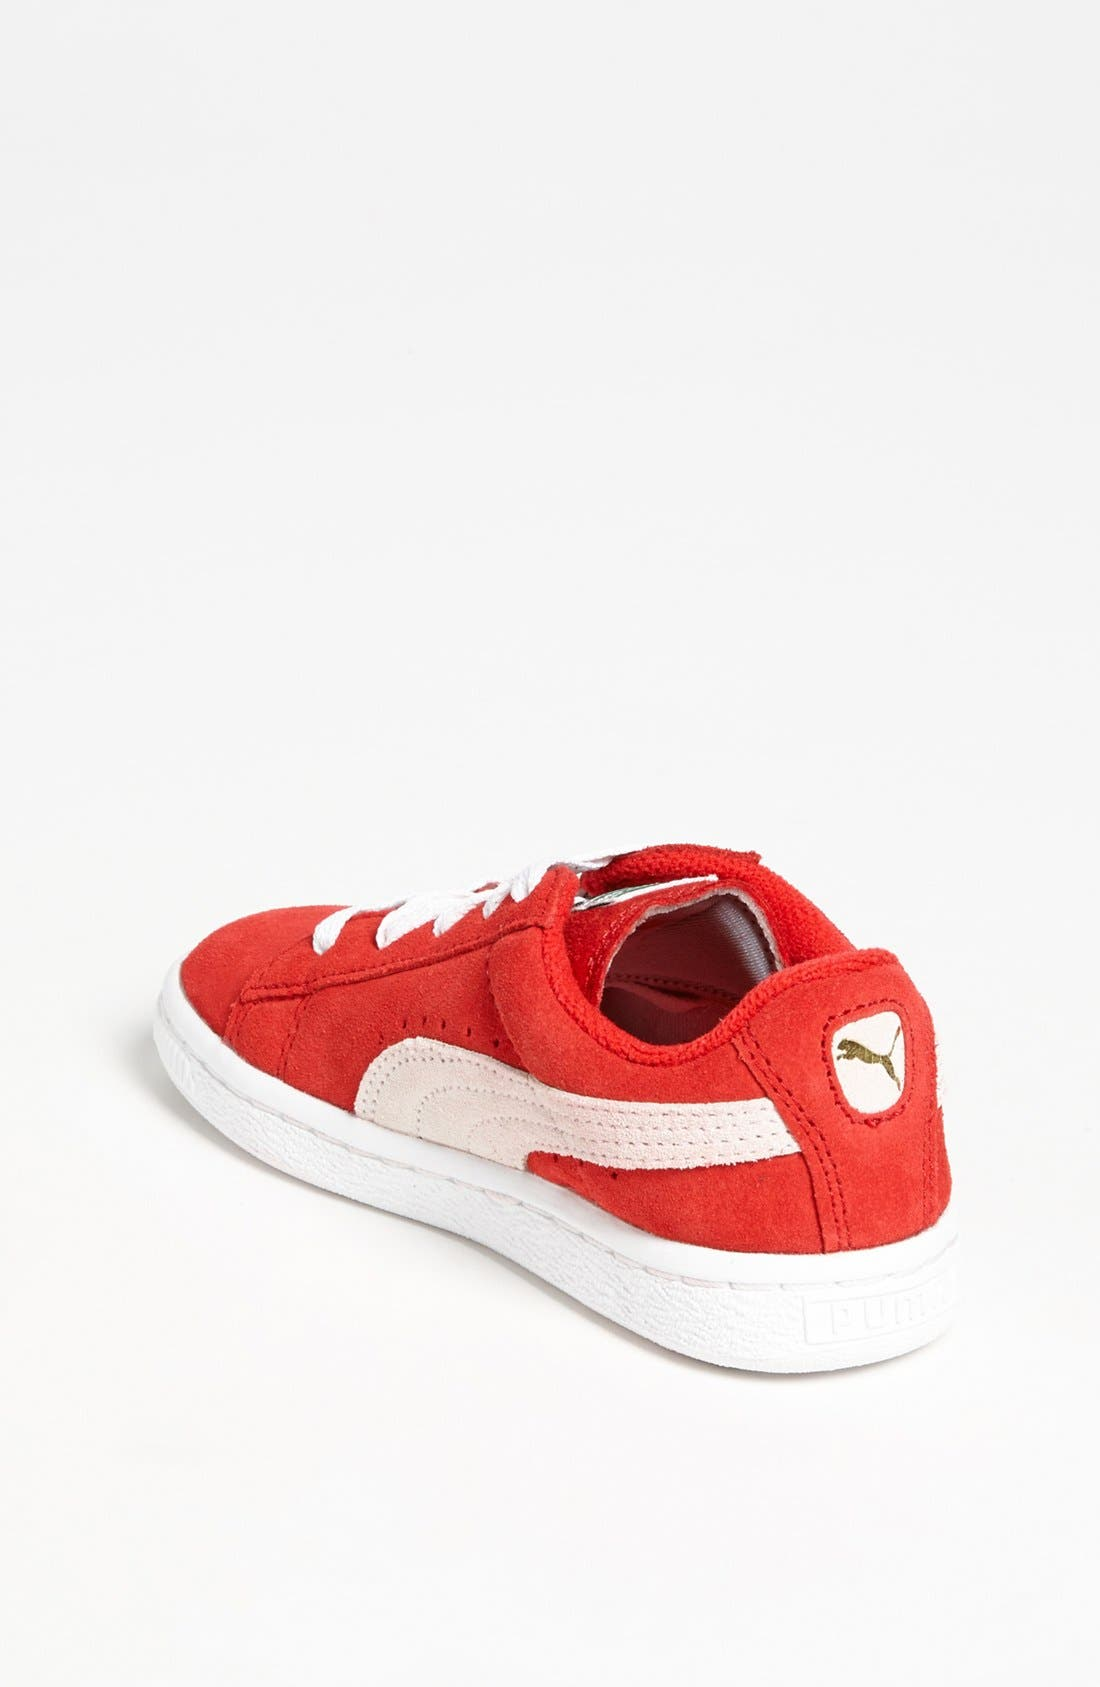 Alternate Image 2  - PUMA Suede Sneaker (Baby, Walker, Toddler, Little Kid & Big Kid)